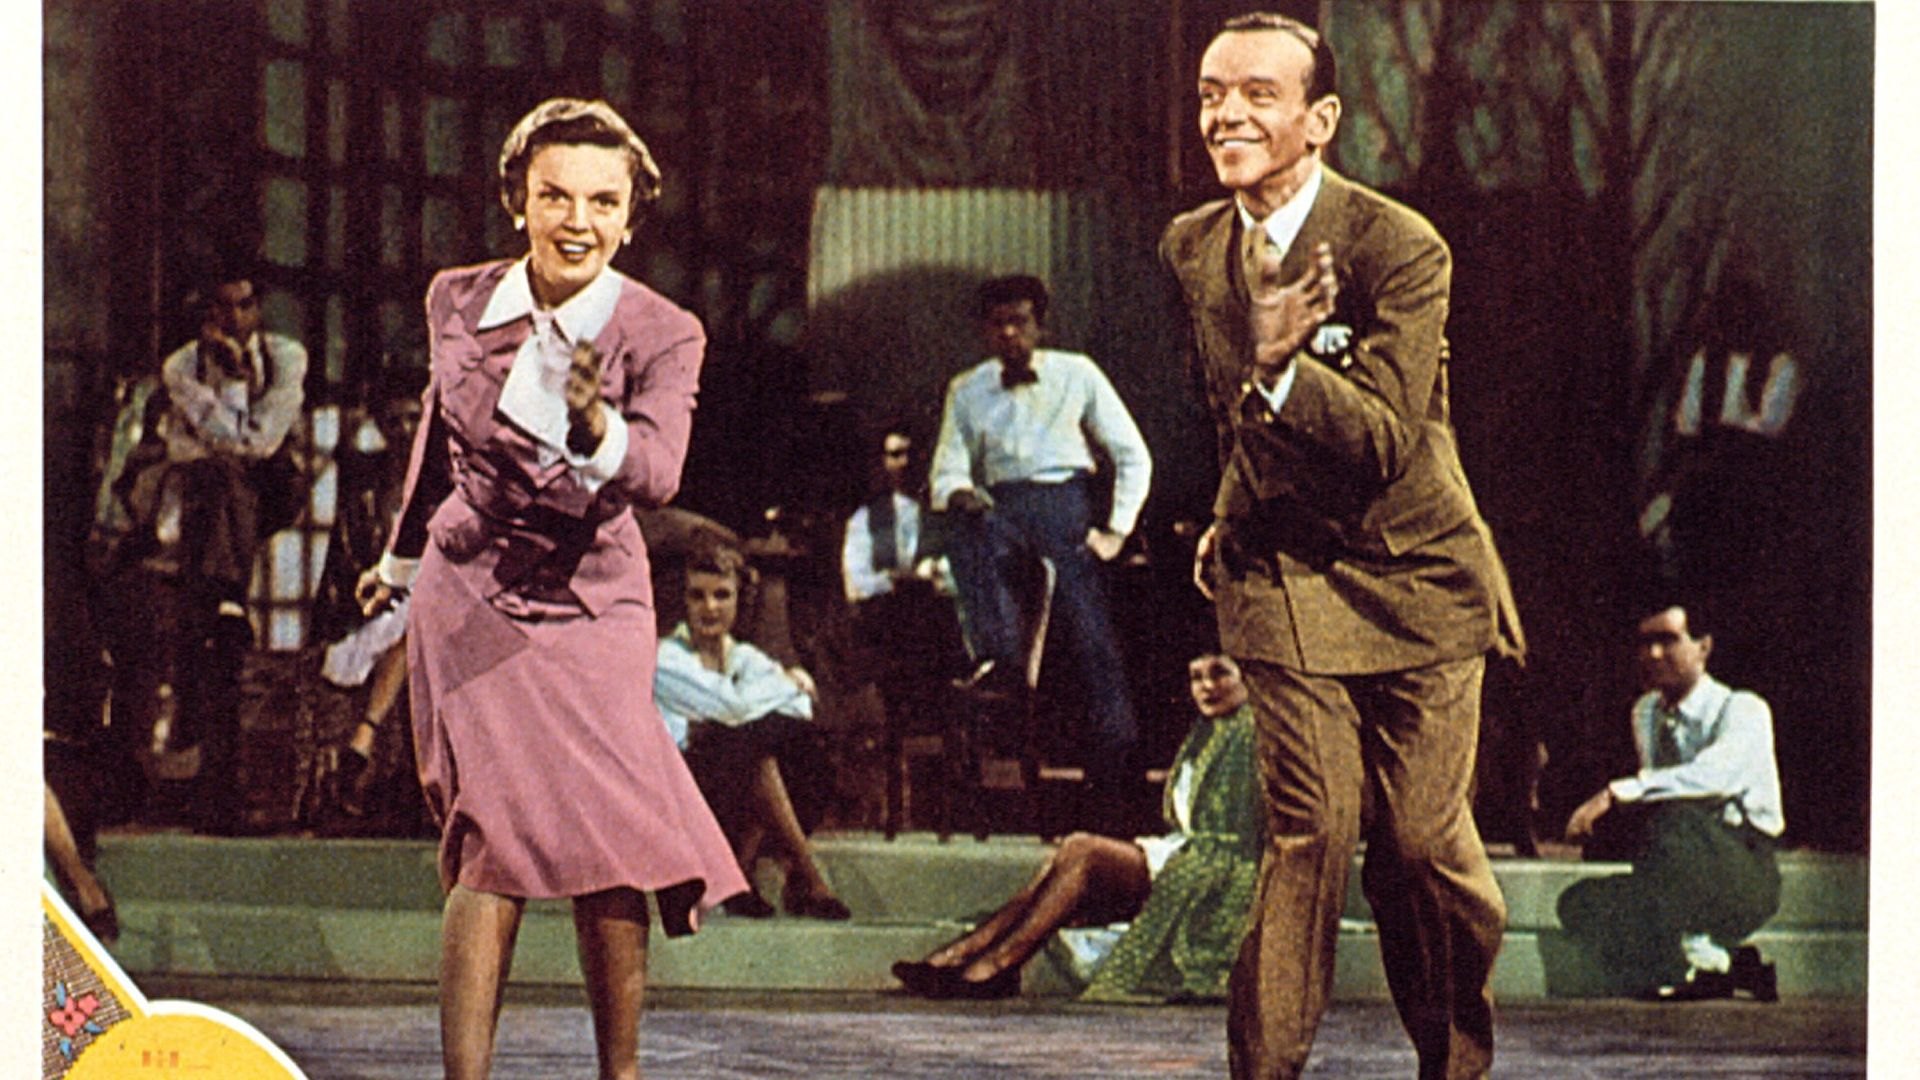 Judy Garland and Fred Astaire in a lobbycard for the 1948 film Easter Parade - Credit: LMPC via Getty Images